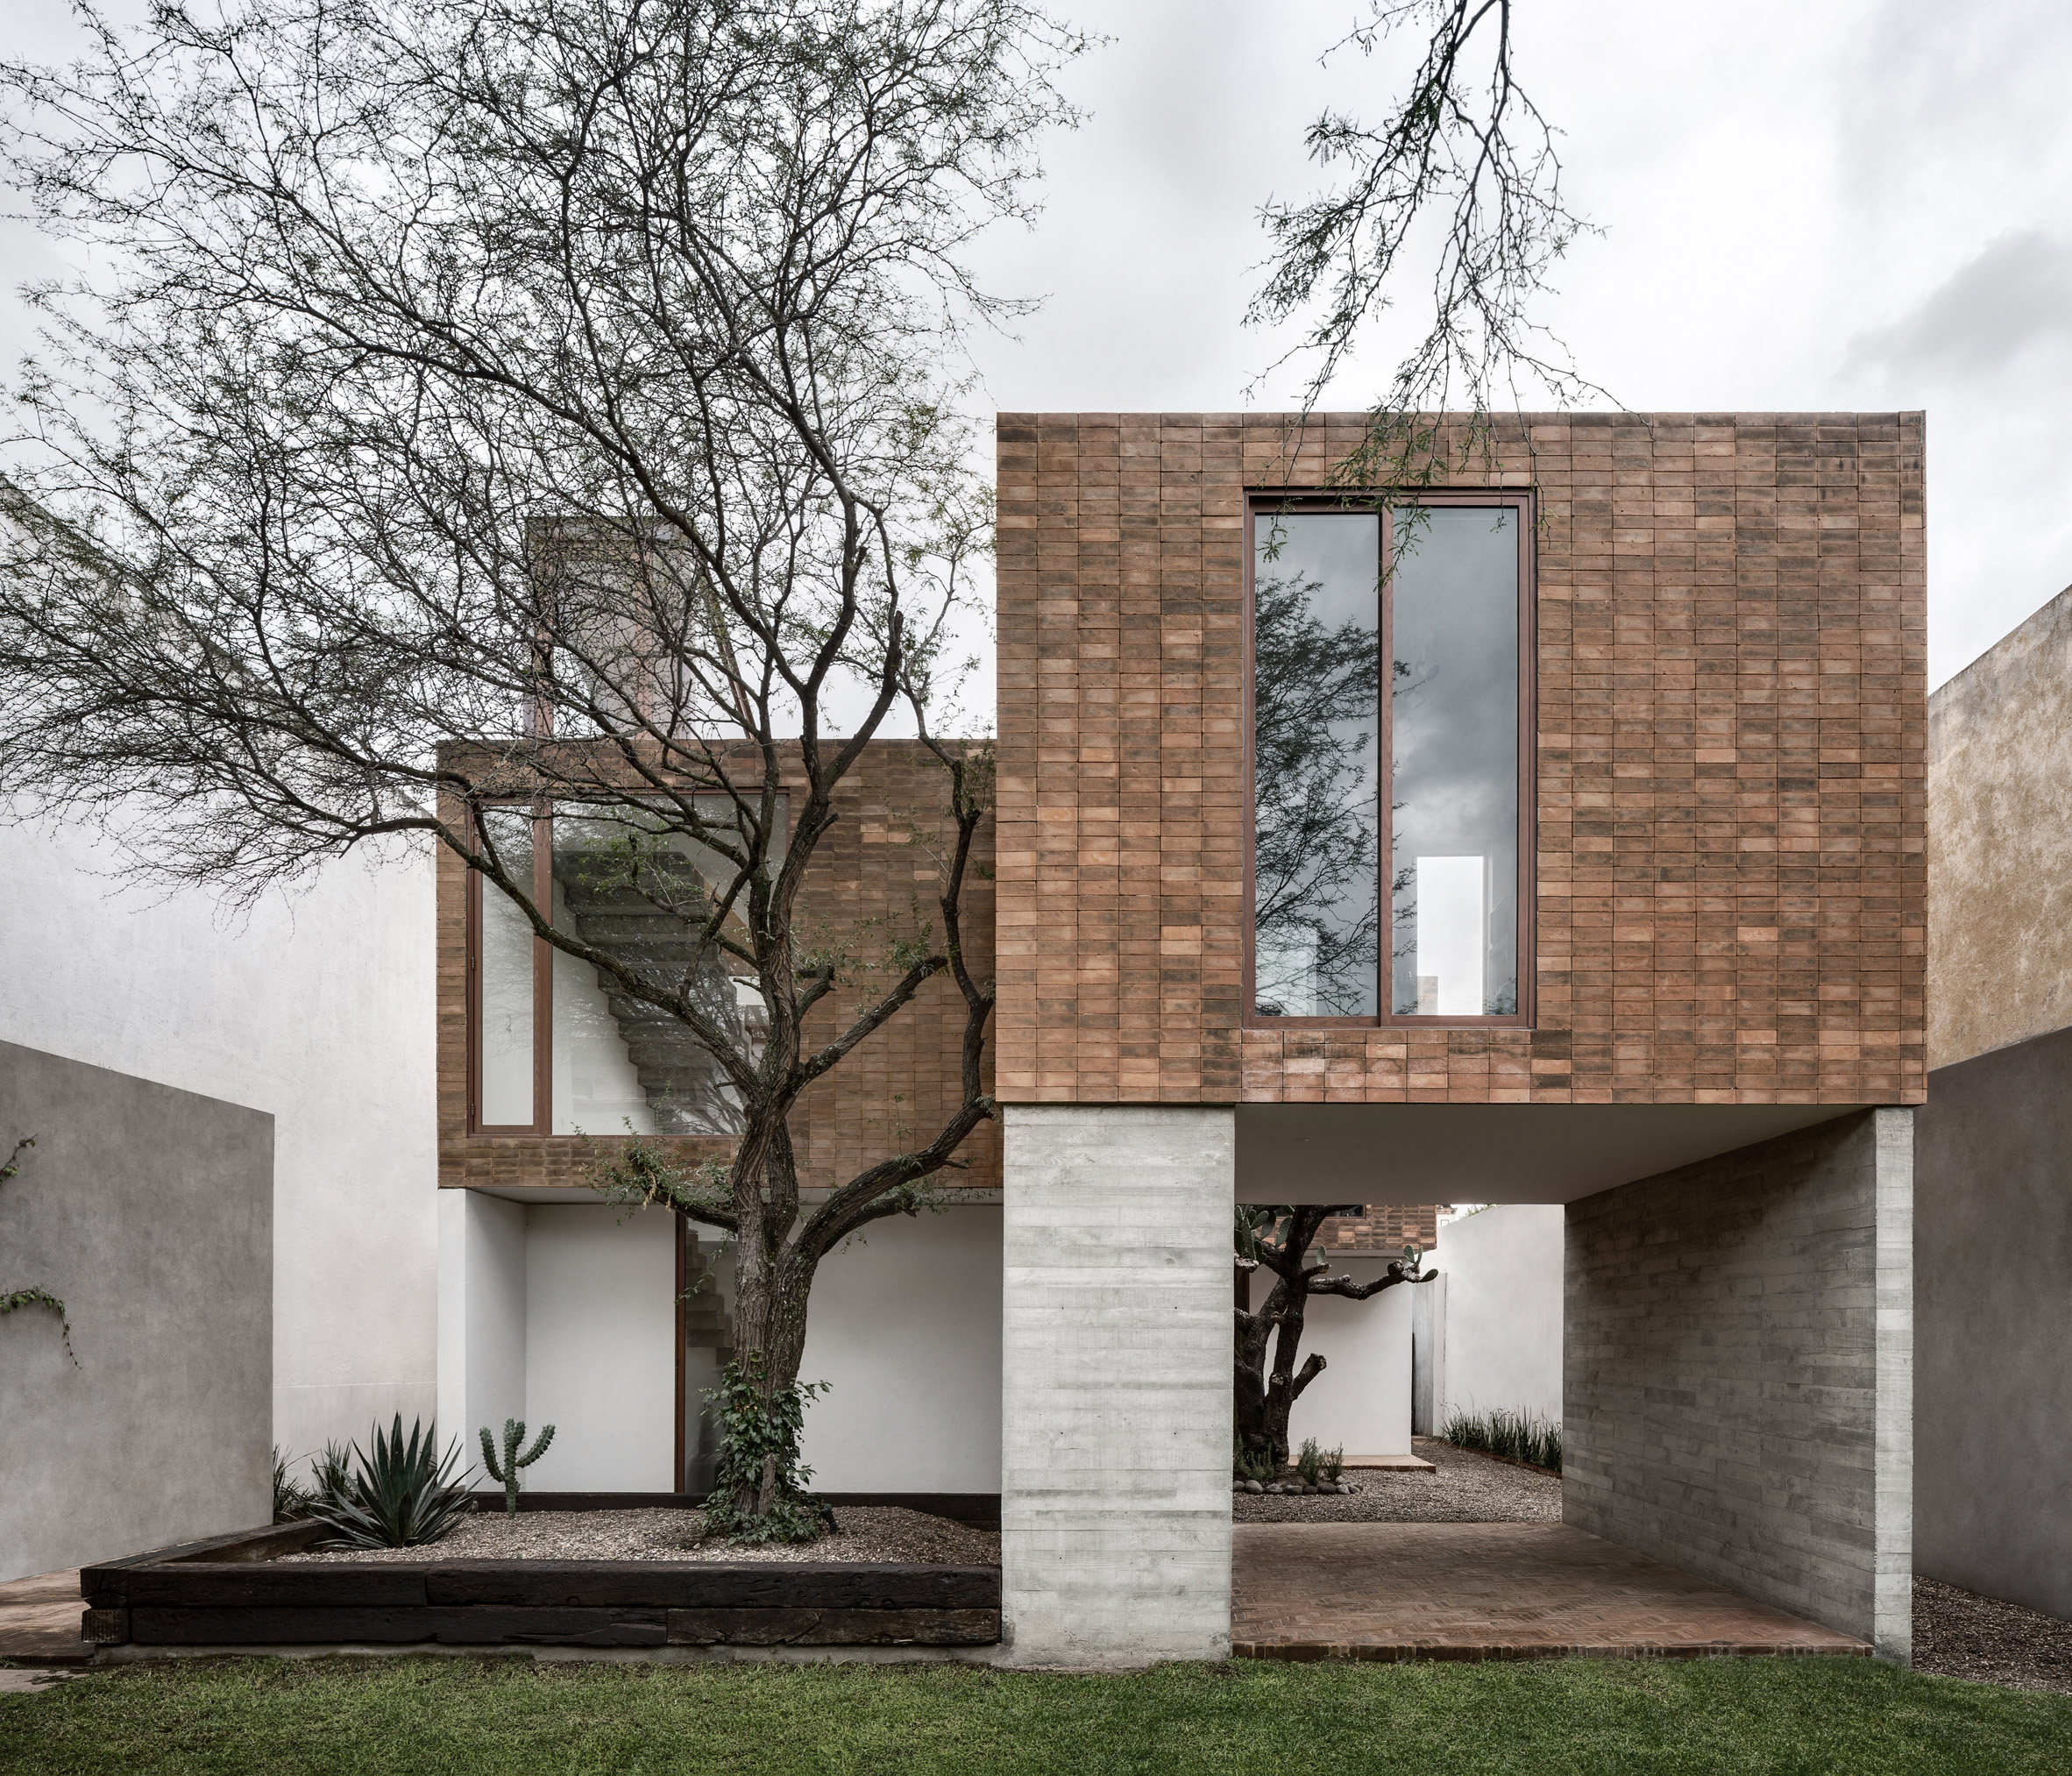 Clay brick and concrete Mexican house surrounds a cactus tree